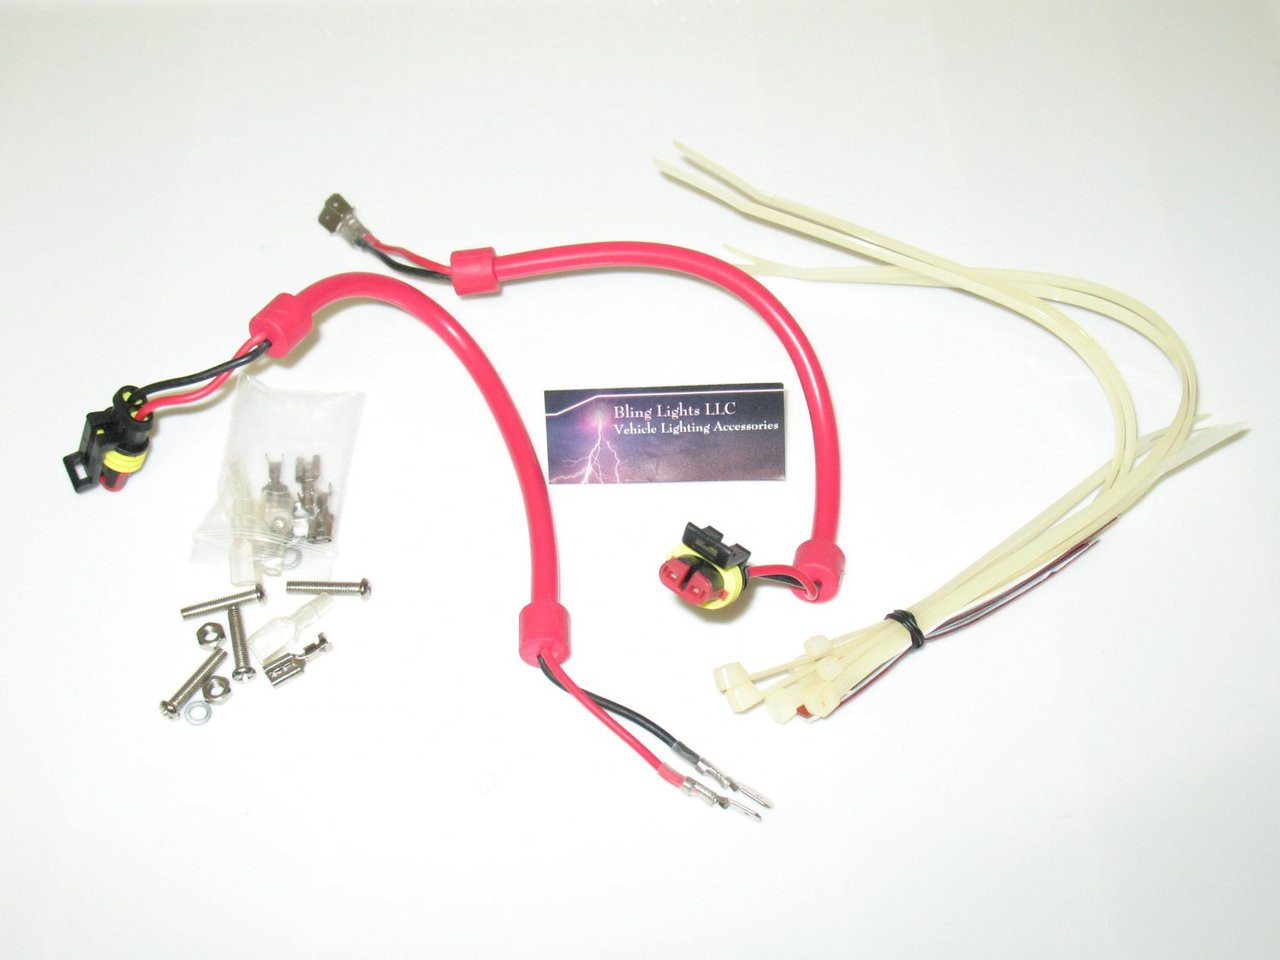 hight resolution of h1 h3 h7 hid conversion kit universal ballast harness wiring accessories blinglights com